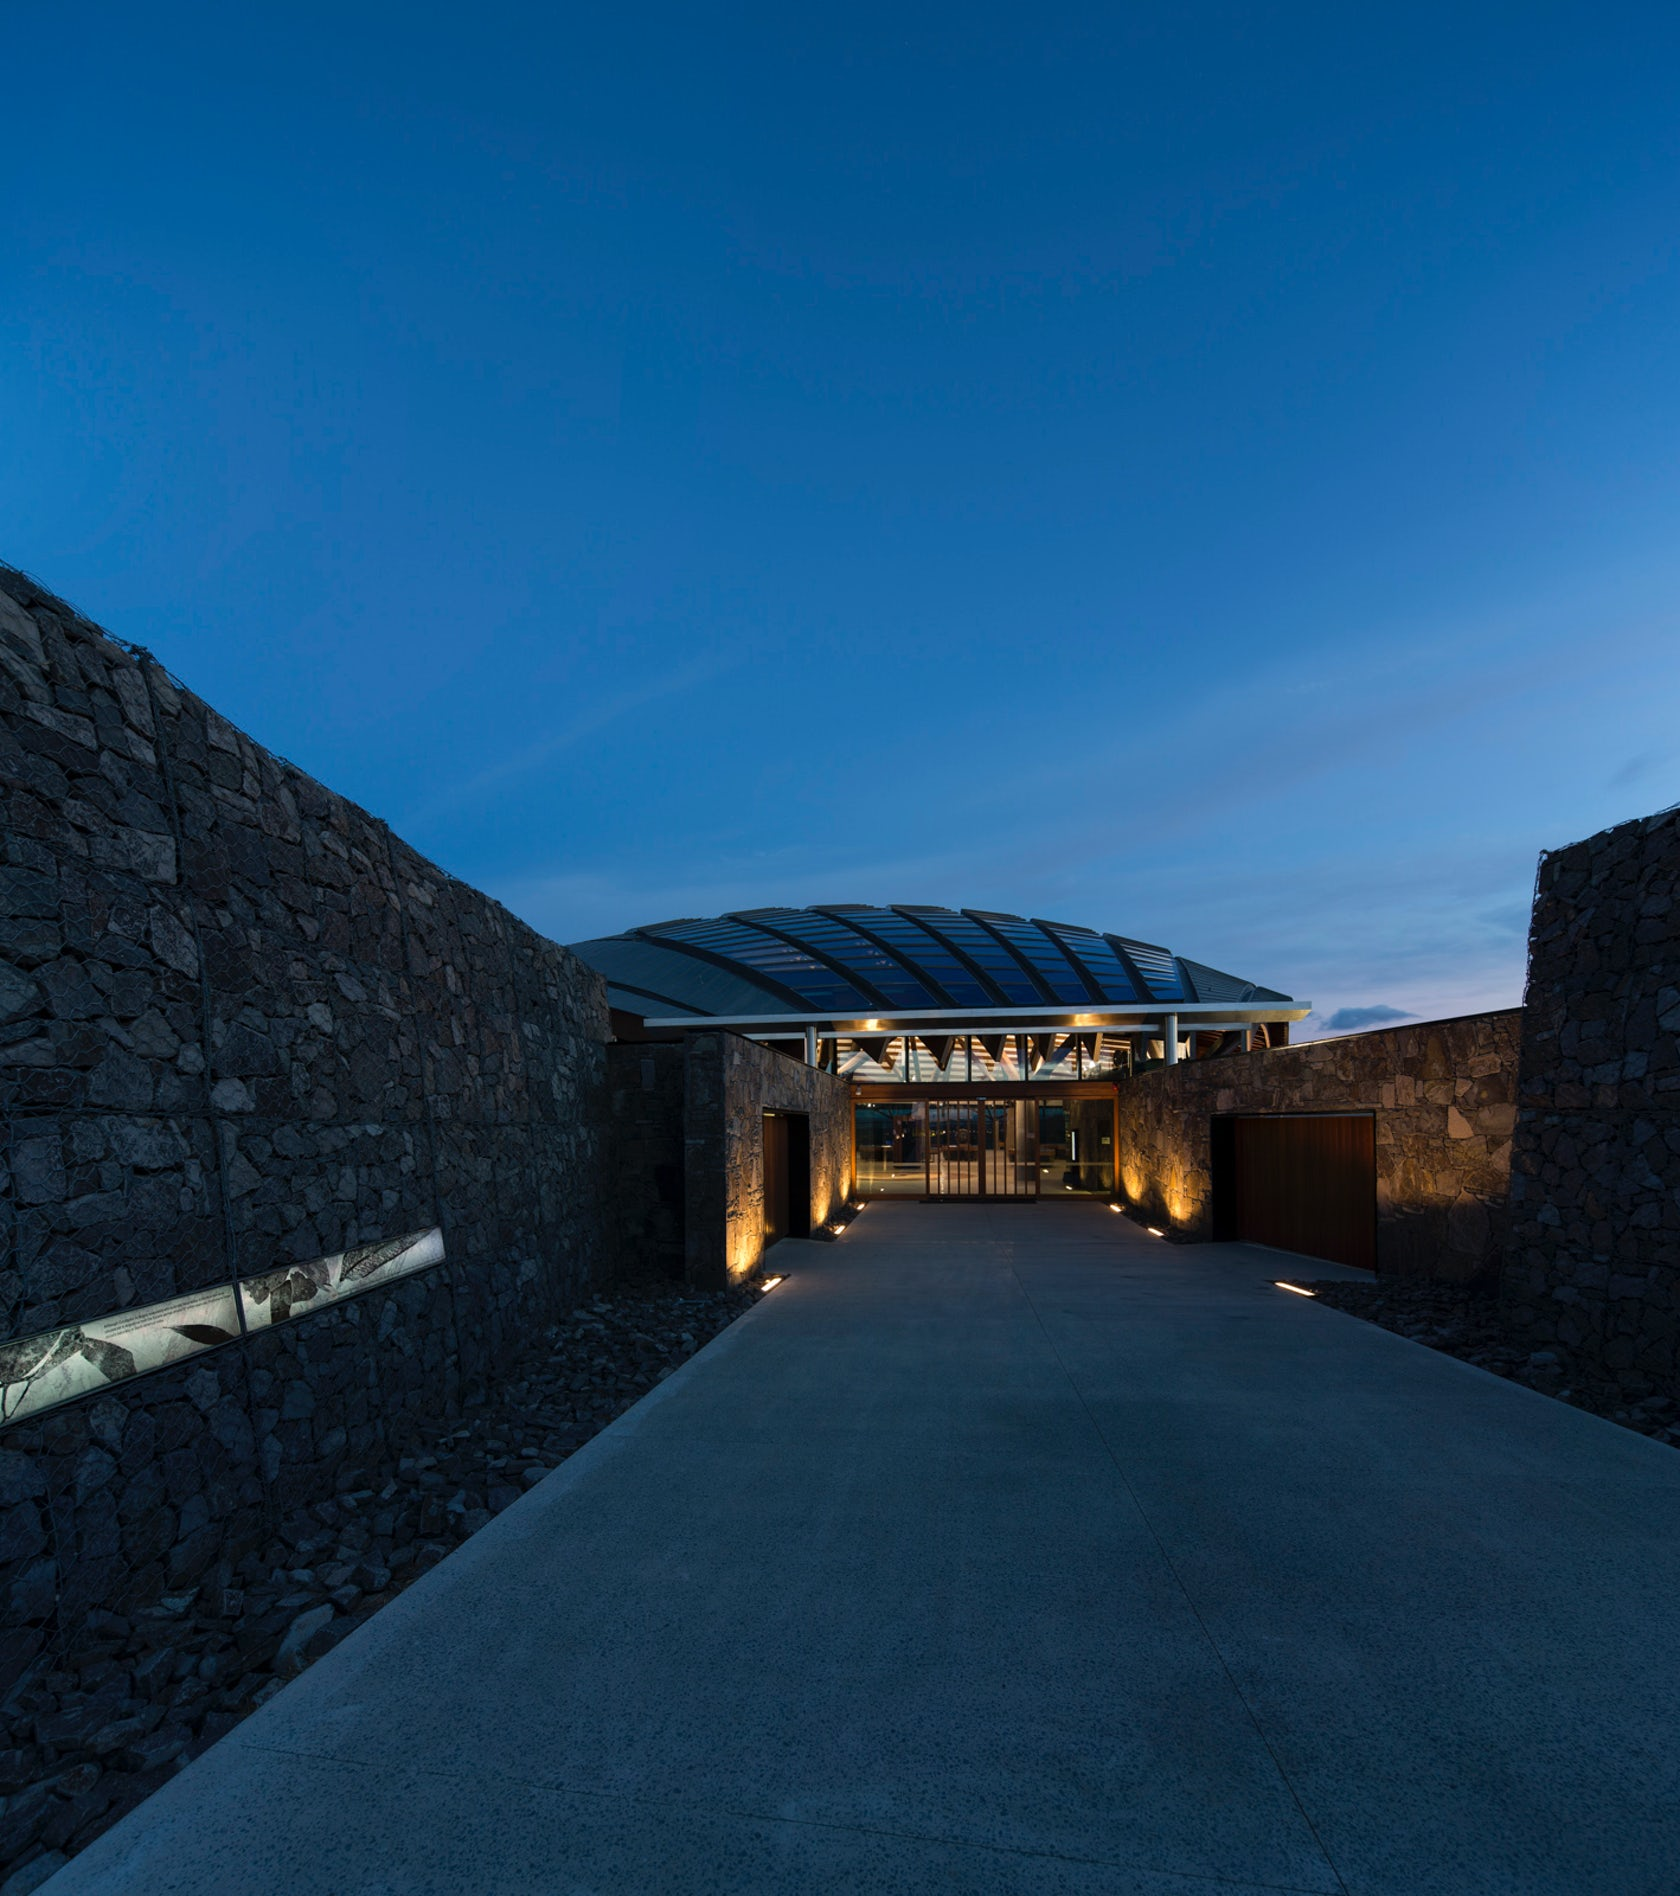 National arboretum canberra architizer for Architecture firms canberra